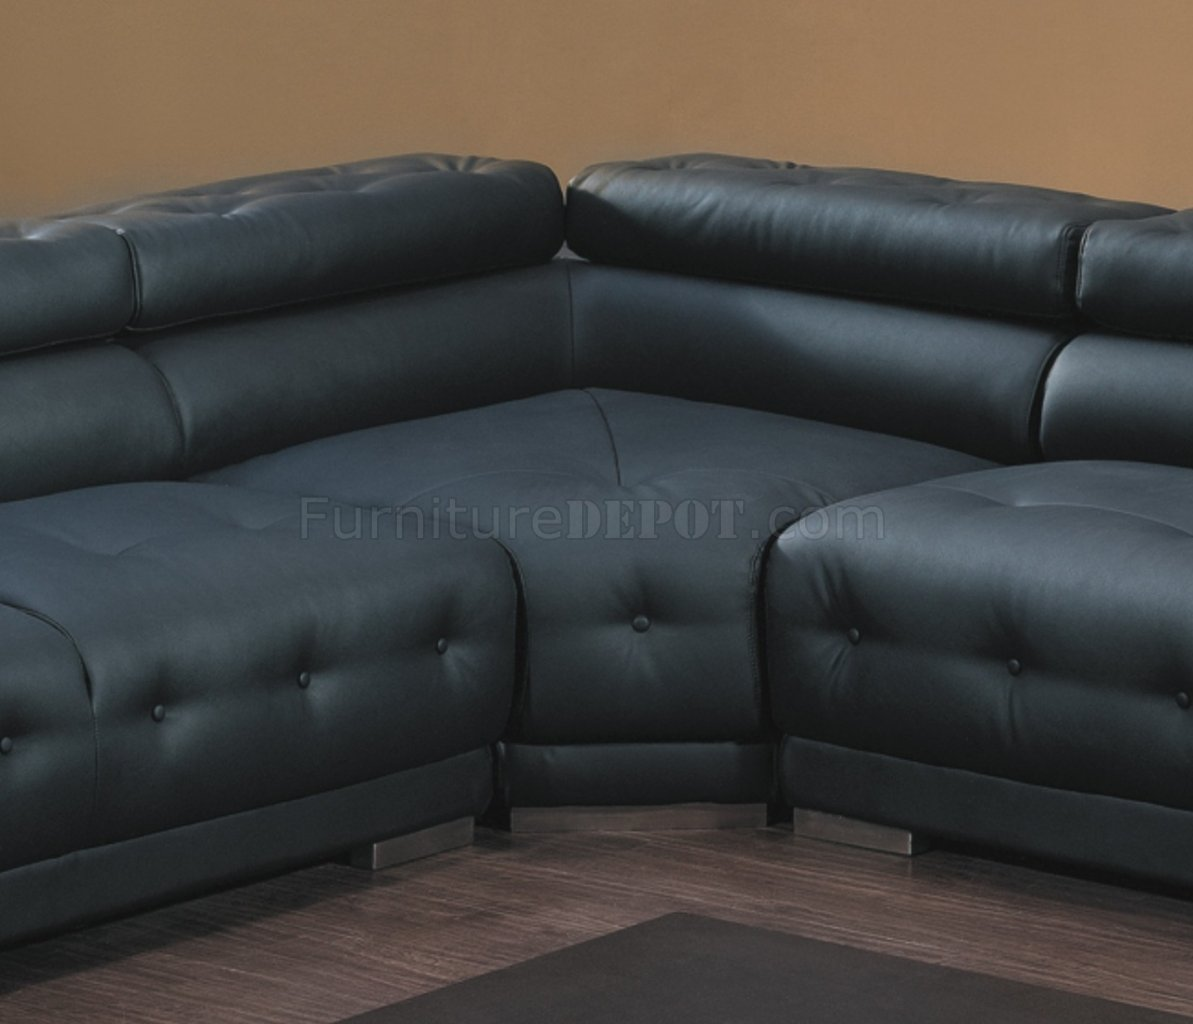 8097 Modern Leather Sectional Sofa In Black By American Eagle